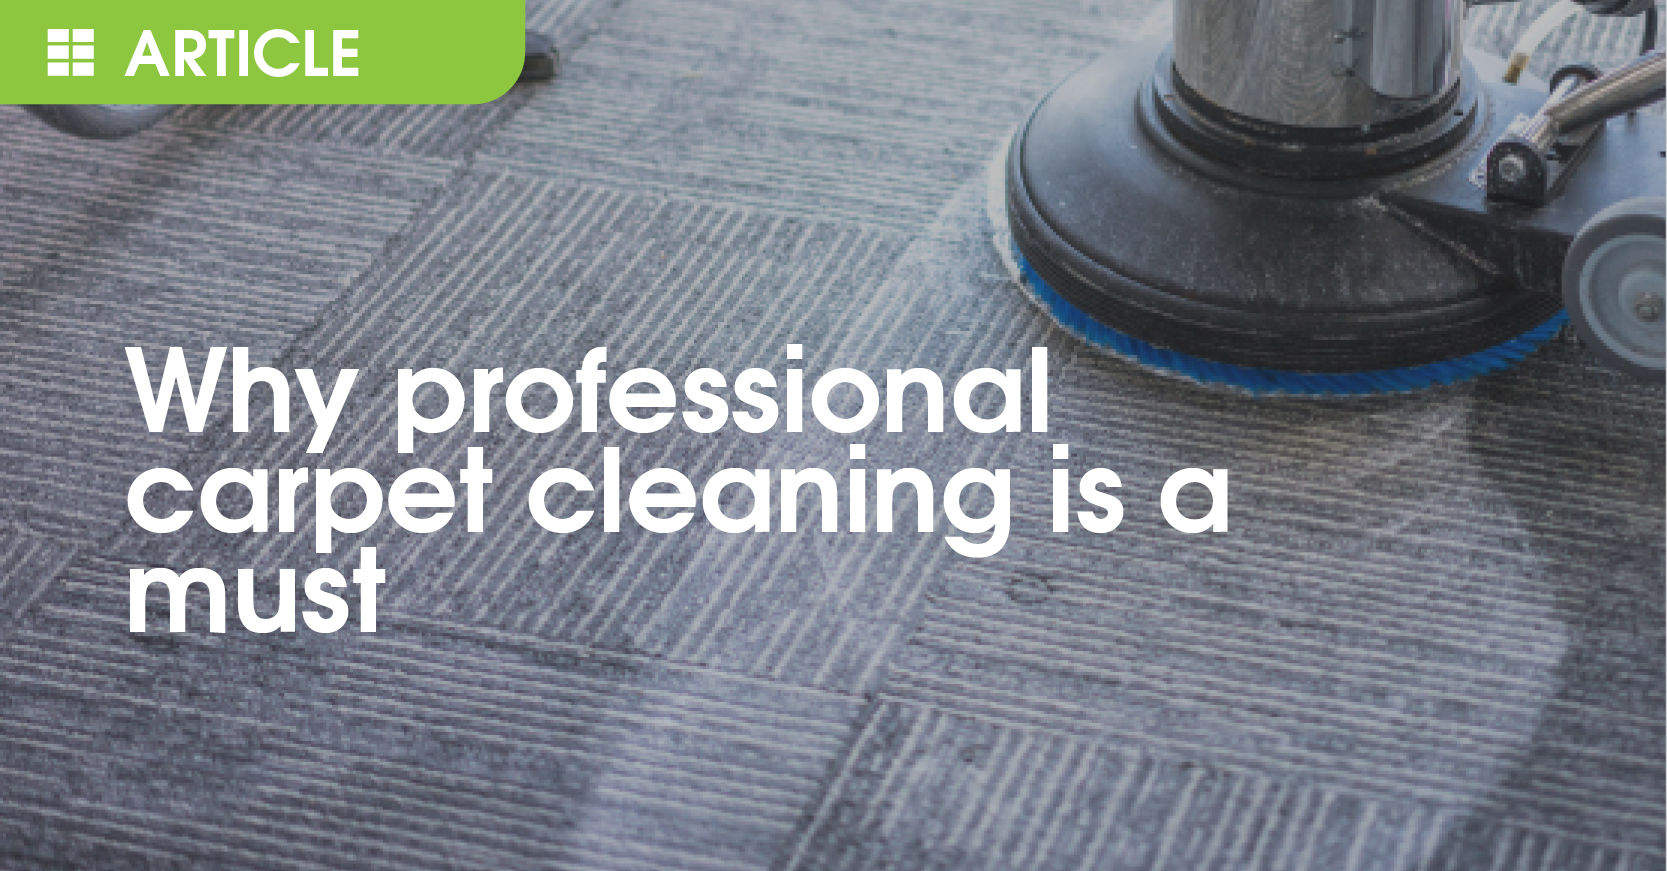 Why professional carpet cleaning is a must